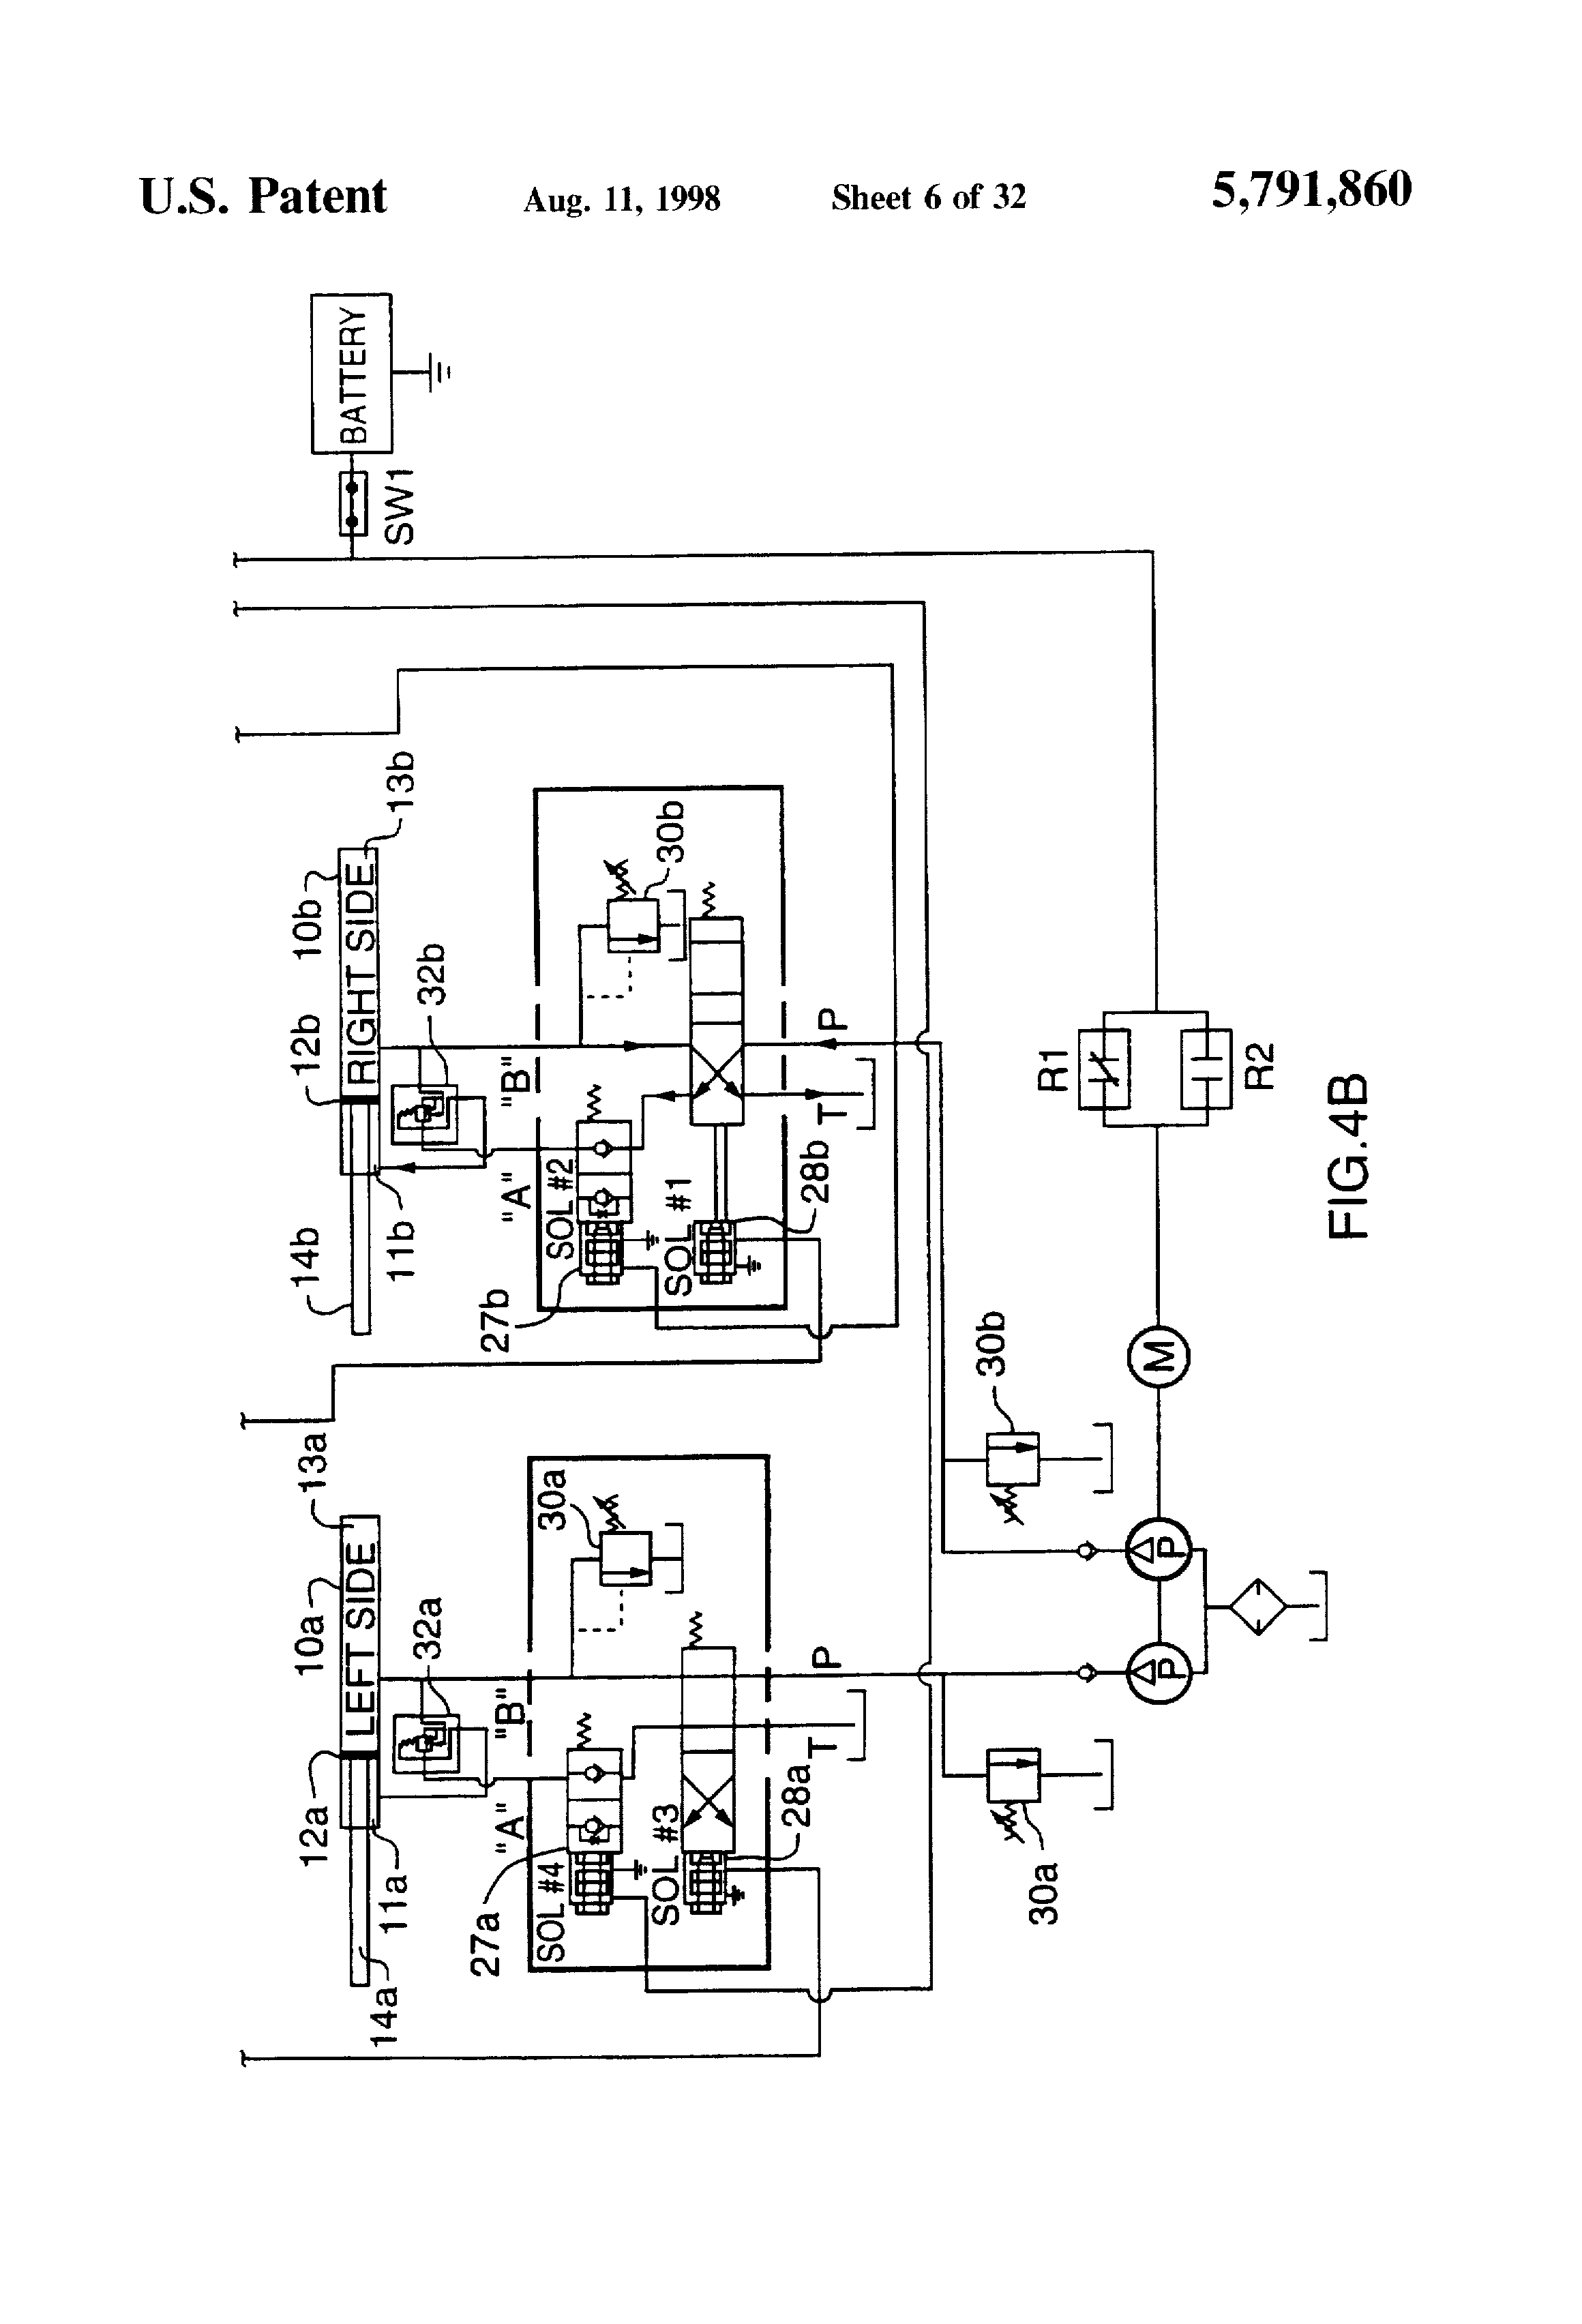 [WRG-4948] Waltco Super Switch 3 Wire Wiring Diagram